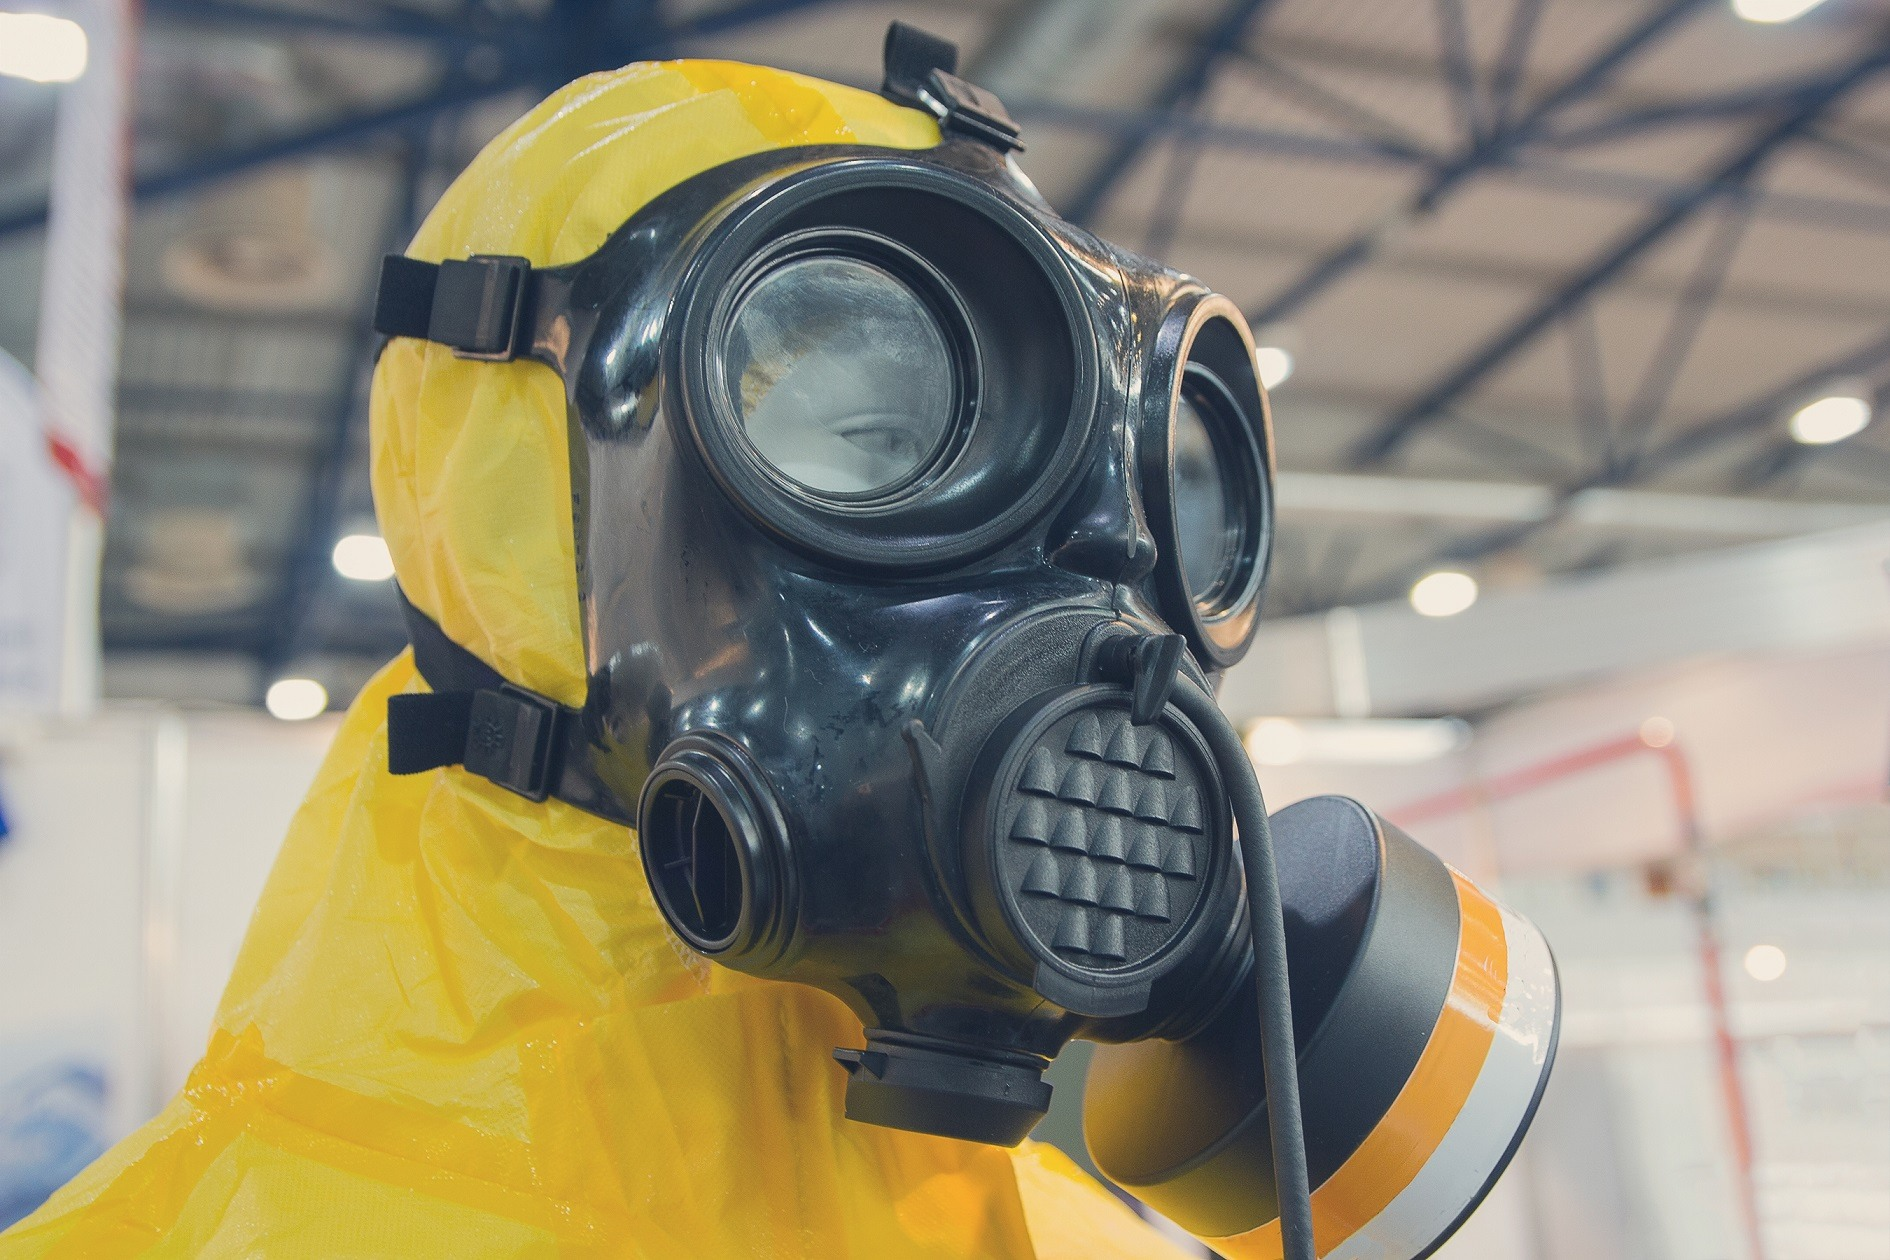 Gas mask with yellow chemical protection suit